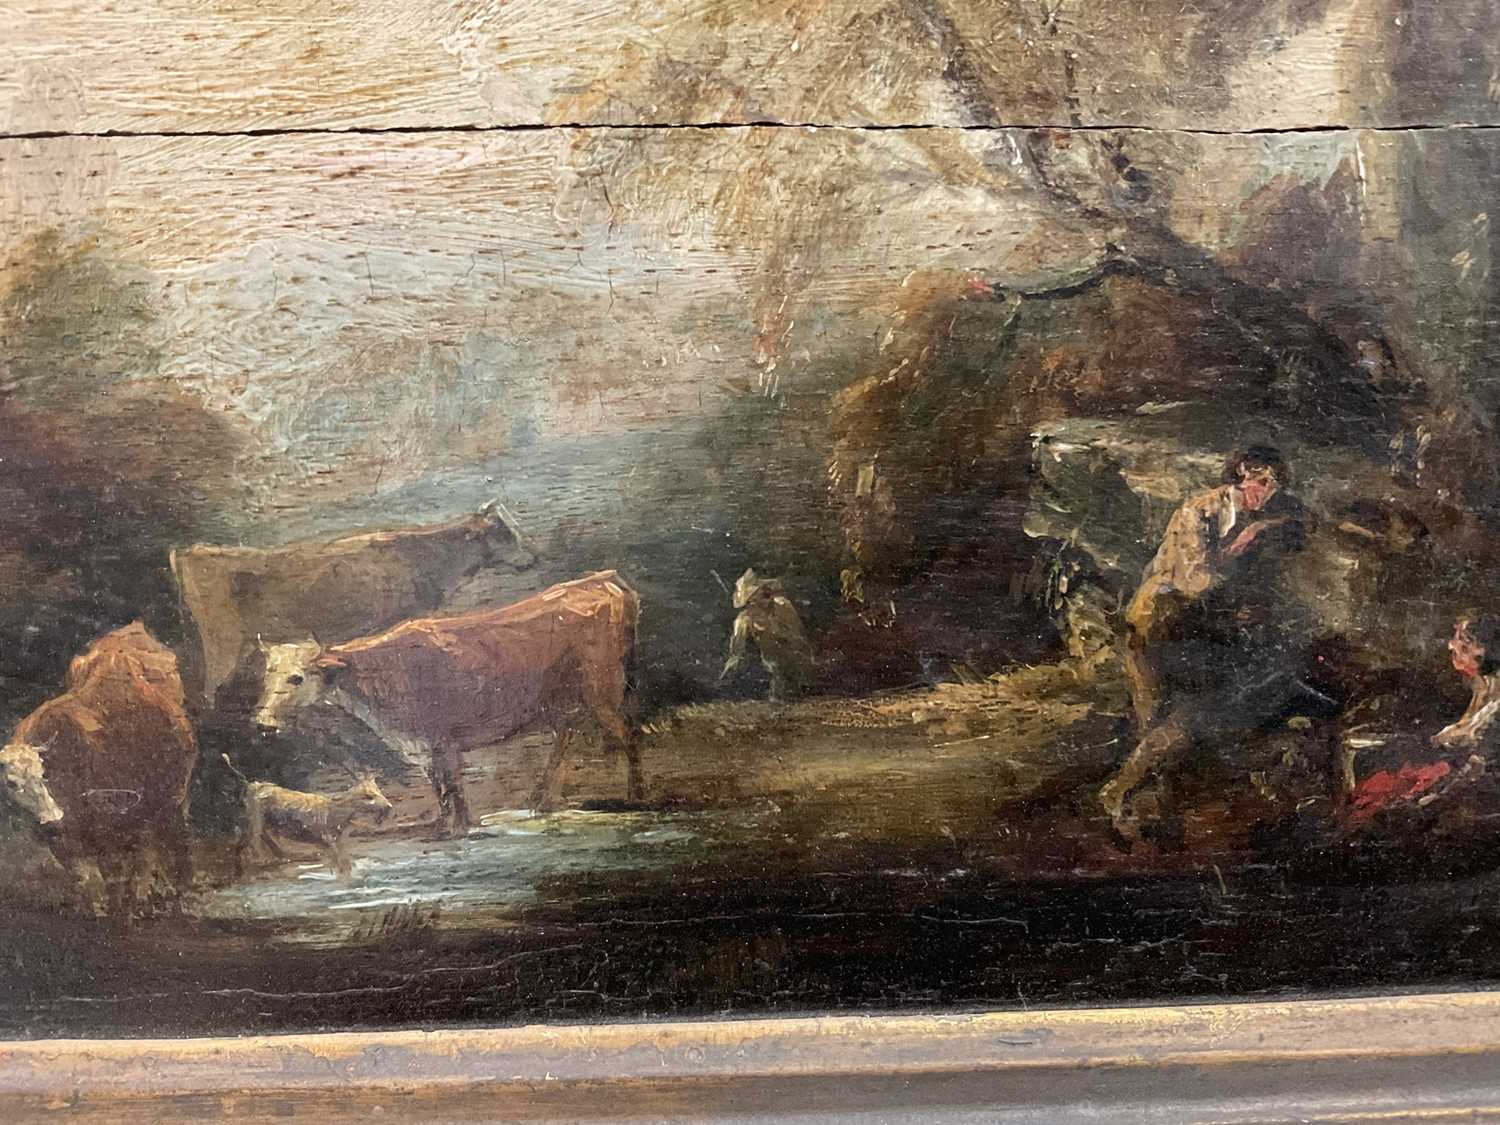 Manner of Thomas Gainsborough oil on panel - cattle and herders in landscape, in gilt frame - Image 10 of 15